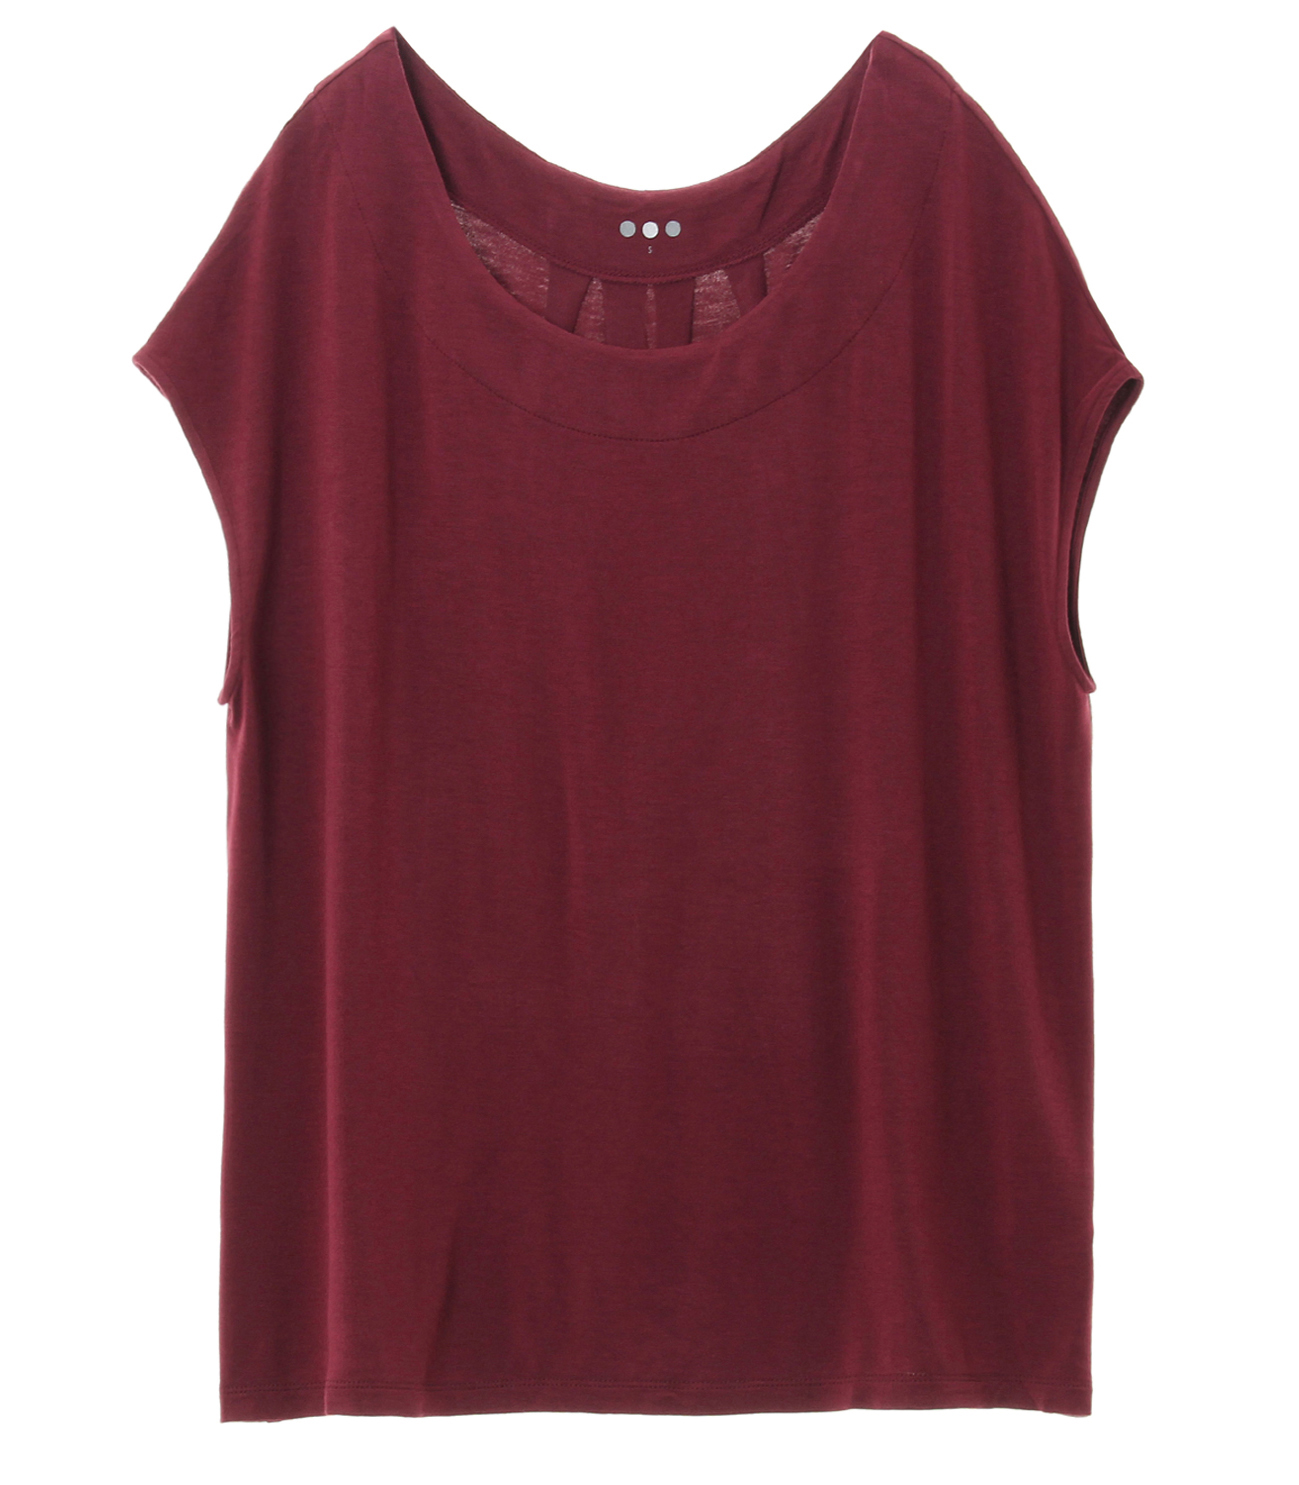 refined jersey top with back detall 詳細画像 port wine 1